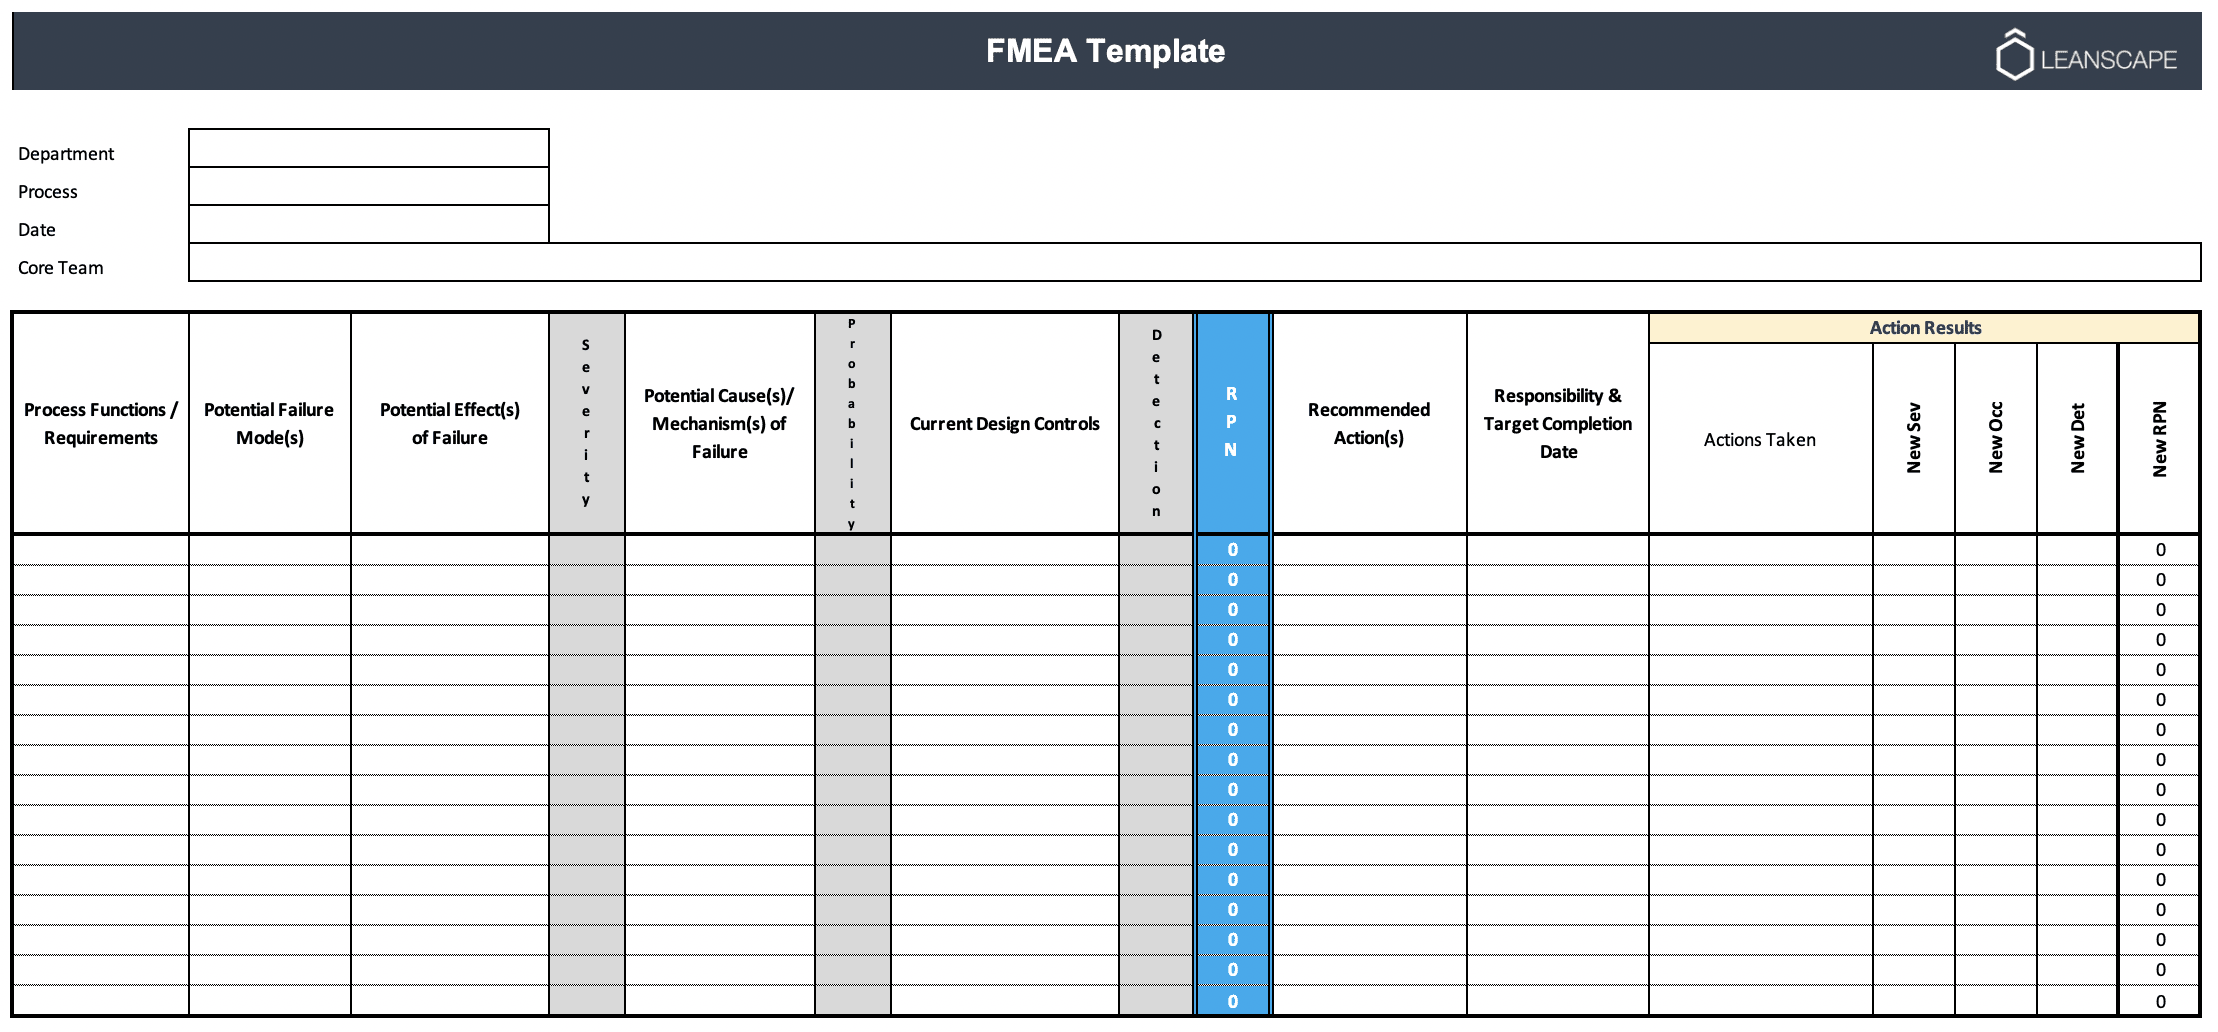 FMEA Model - Risk Management